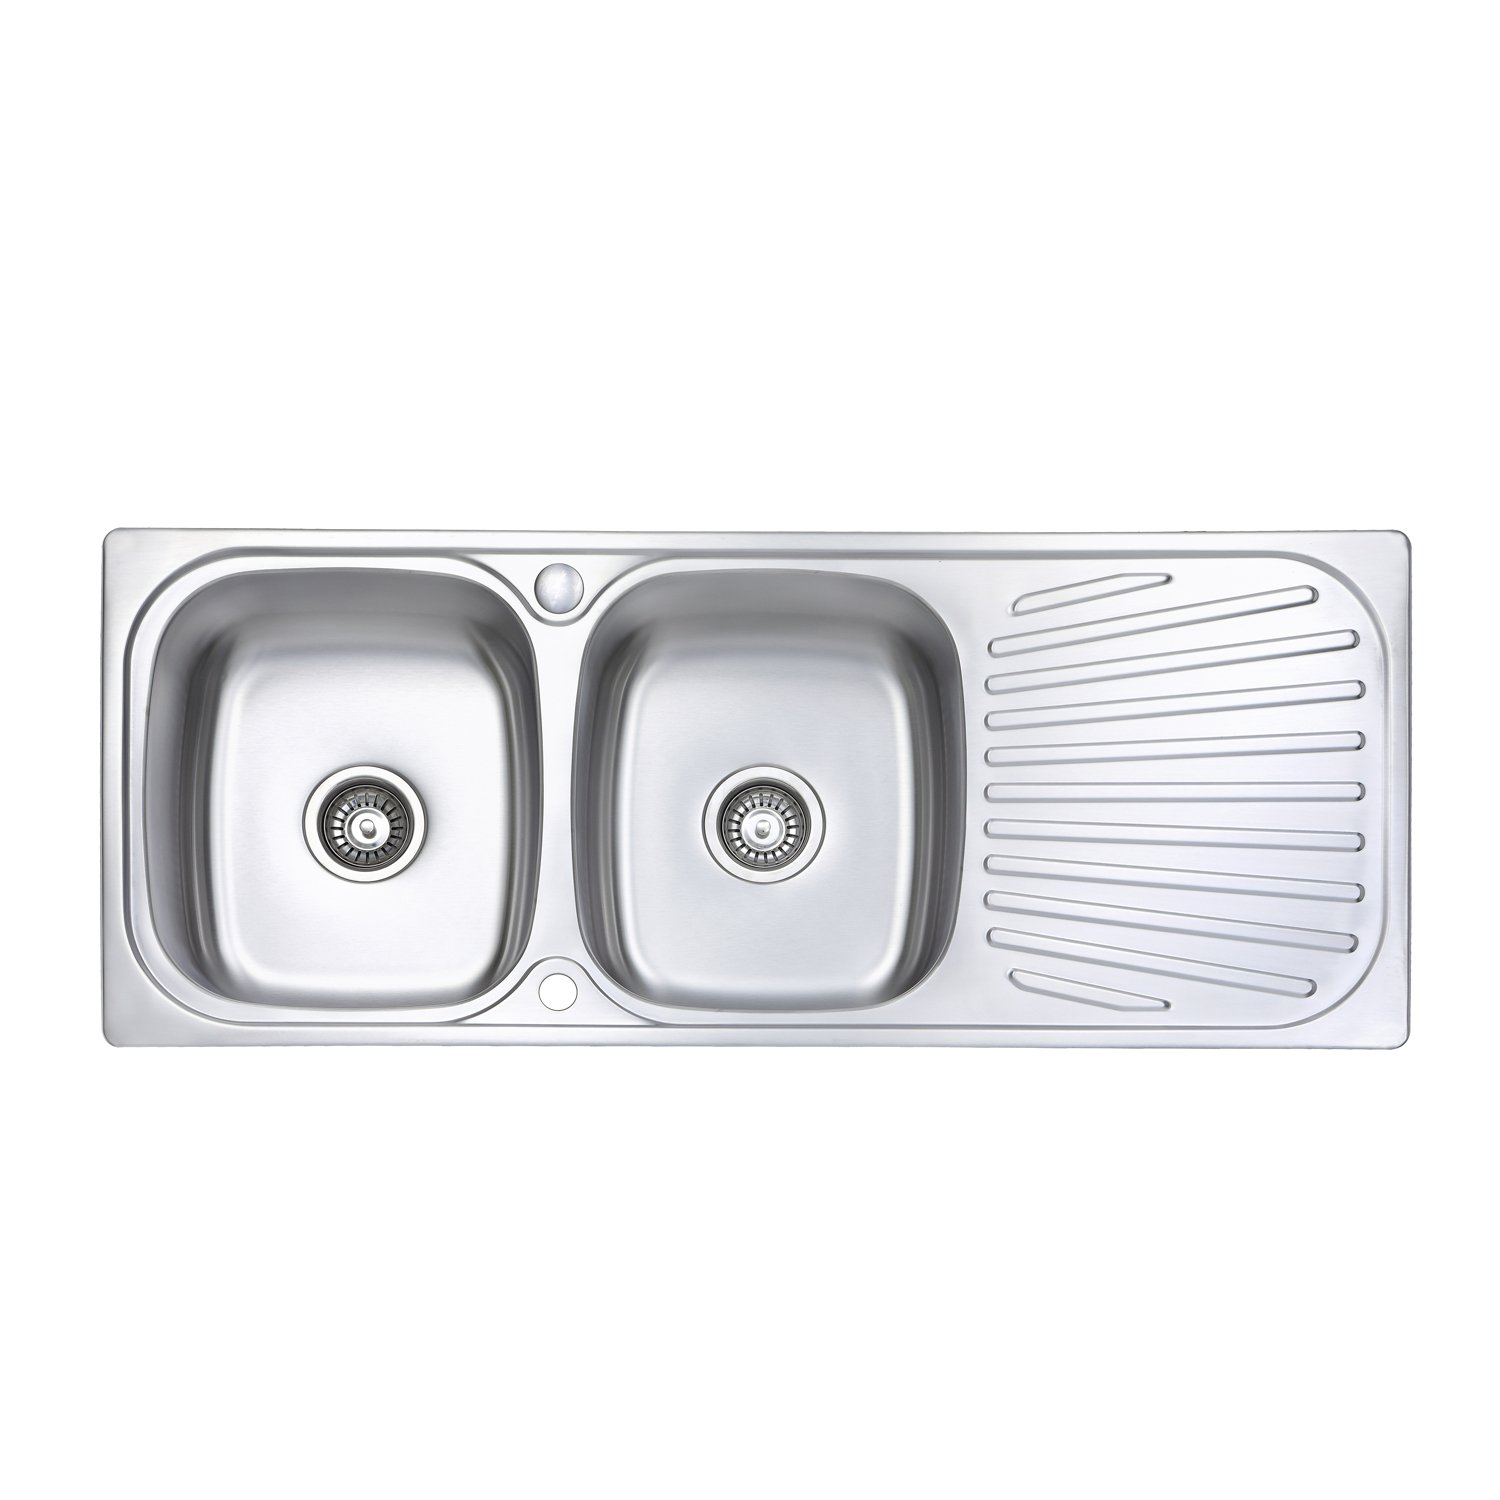 JASS FERRY Stainless Steel Kitchen Sink Welding Style Inset Double Bowl Reversible Drainer & Waste Pipes Clips - 10 Years Warranty